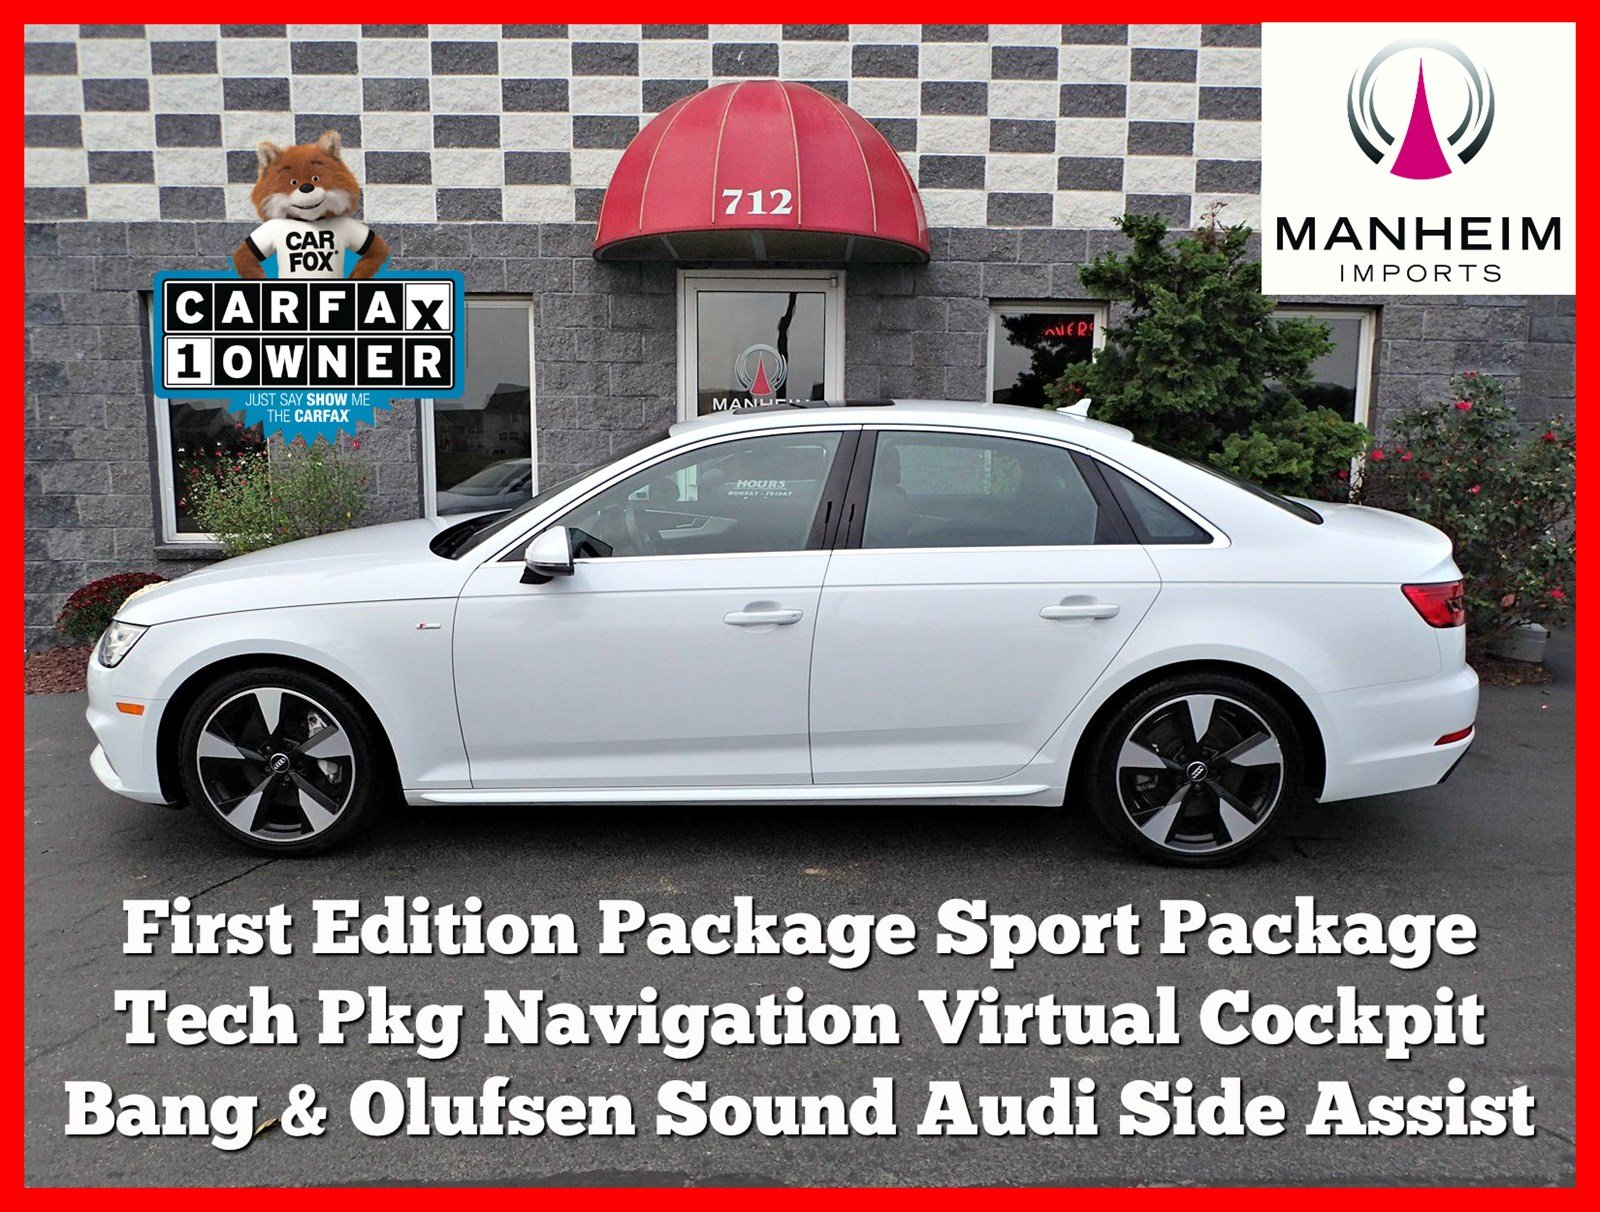 Pre Owned 2017 Audi A4 Premium Plus First Edition Package 4dr Car in